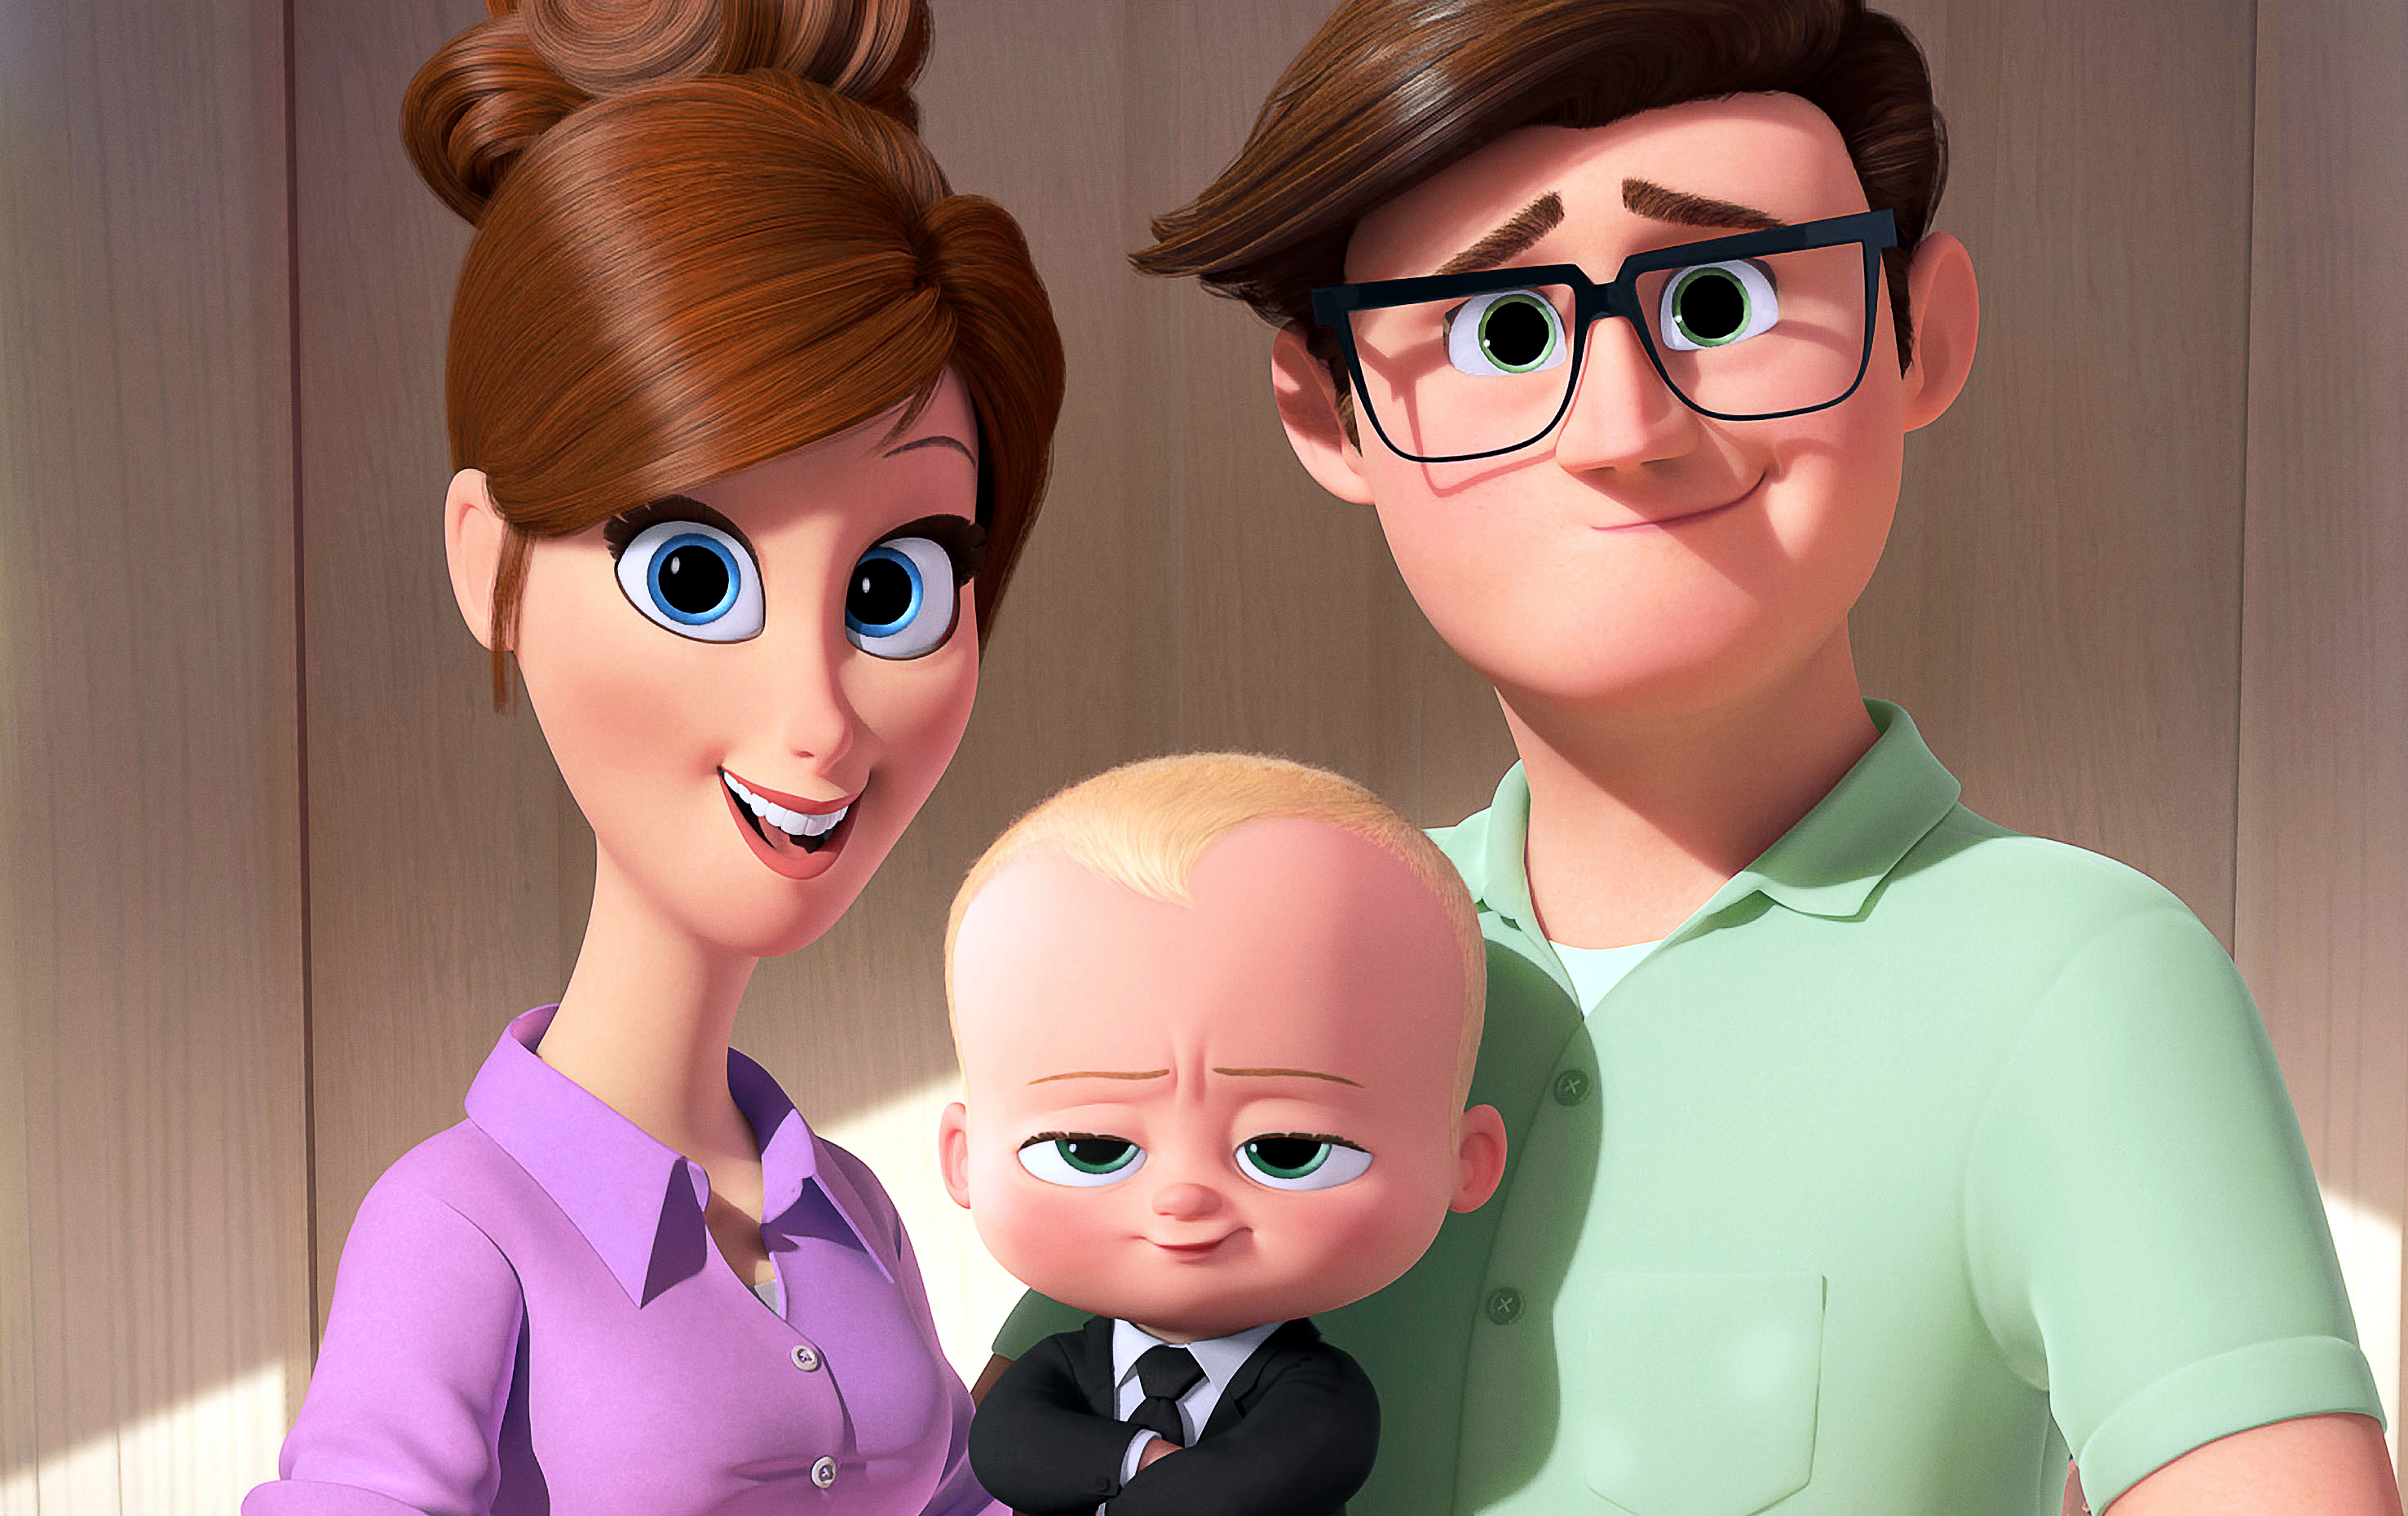 """This image released by DreamWorks Animation shows the characters Mother, voiced by Lisa Kudrow, from left, Boss Baby, voiced by Alec Baldwin, and Father, voiced by Jimmy Kimmel from the animated film, """"The Boss Baby."""" (DreamWorks Animation via AP)"""